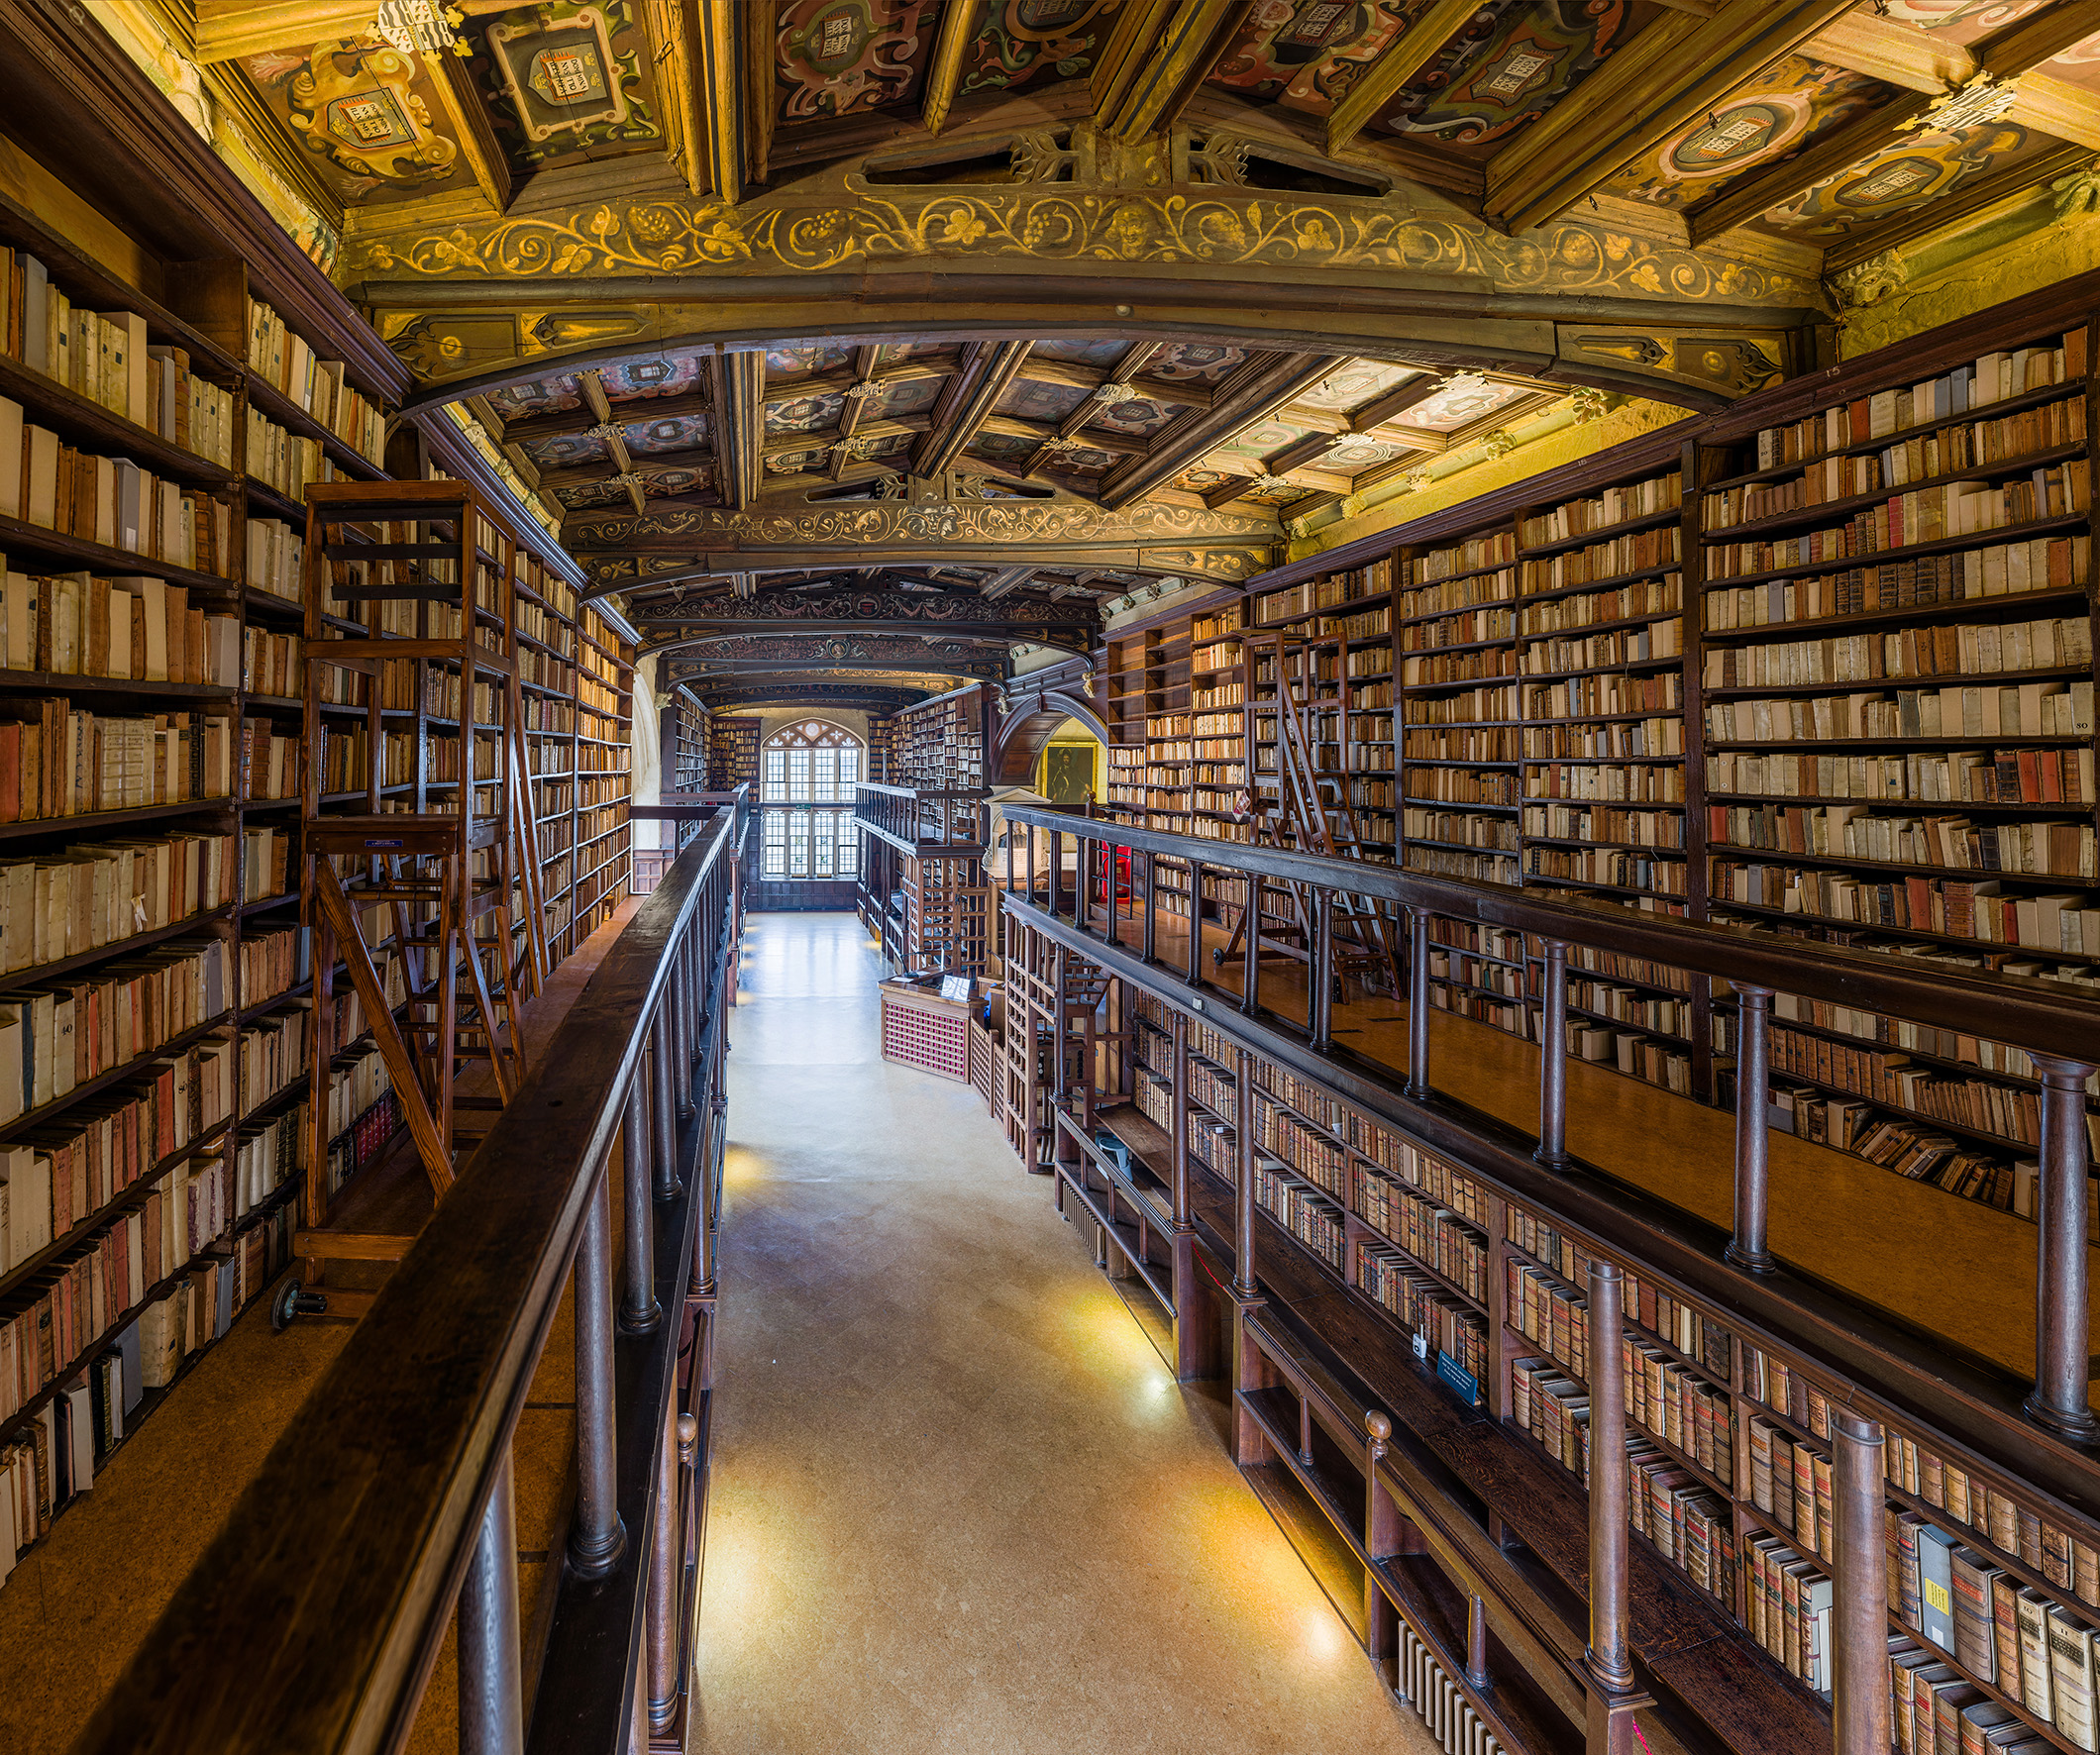 The Bodleian Library of Oxford University, Britain's second biggest library, is hosting Babel: Adventures in Translation